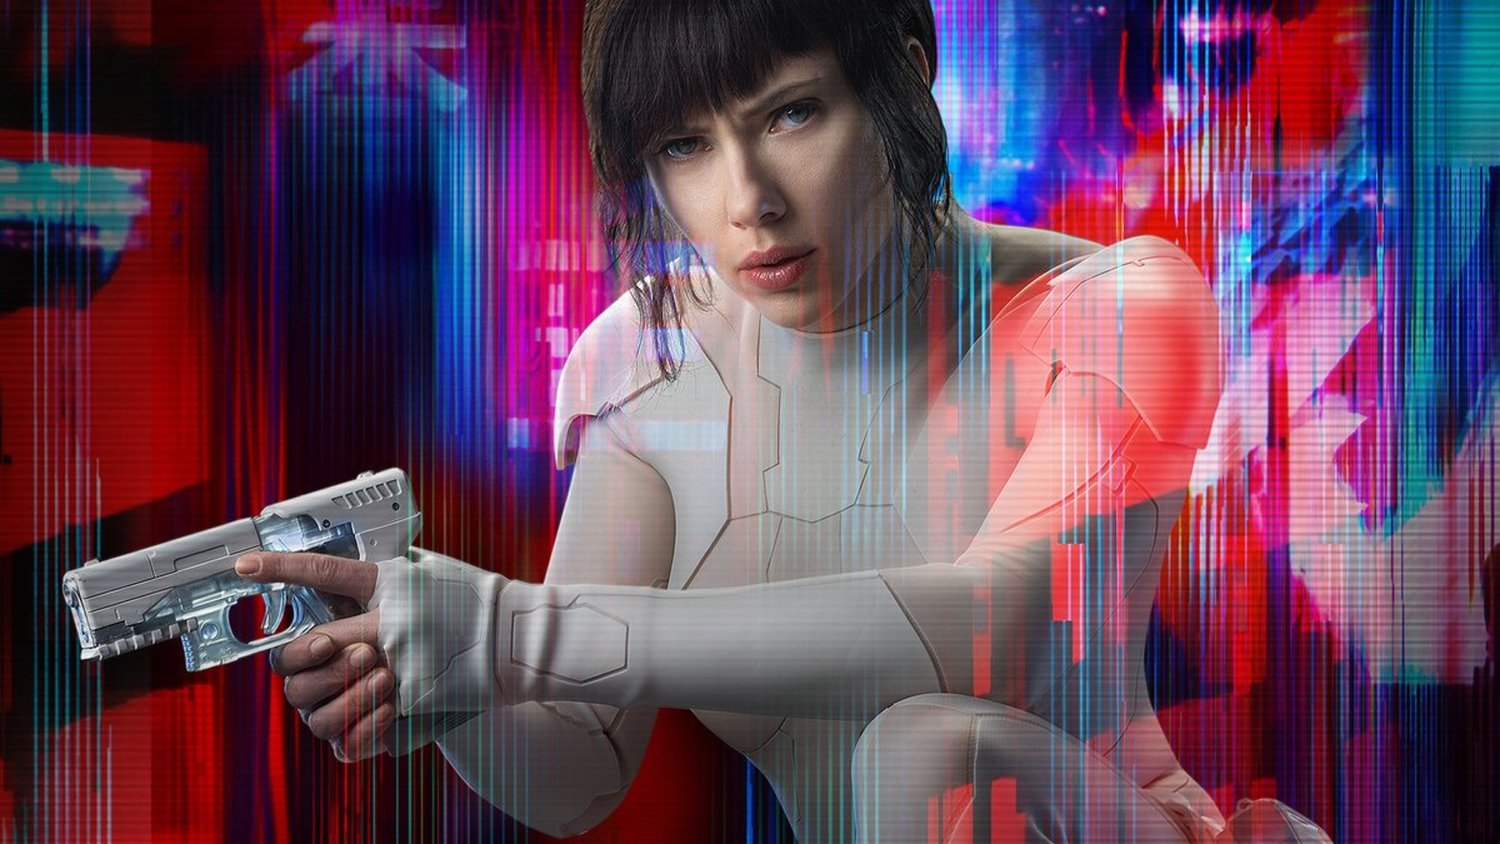 The Original GHOST IN THE SHELL Anime Voice Actors Will Dub the Live-Action Film in Japan